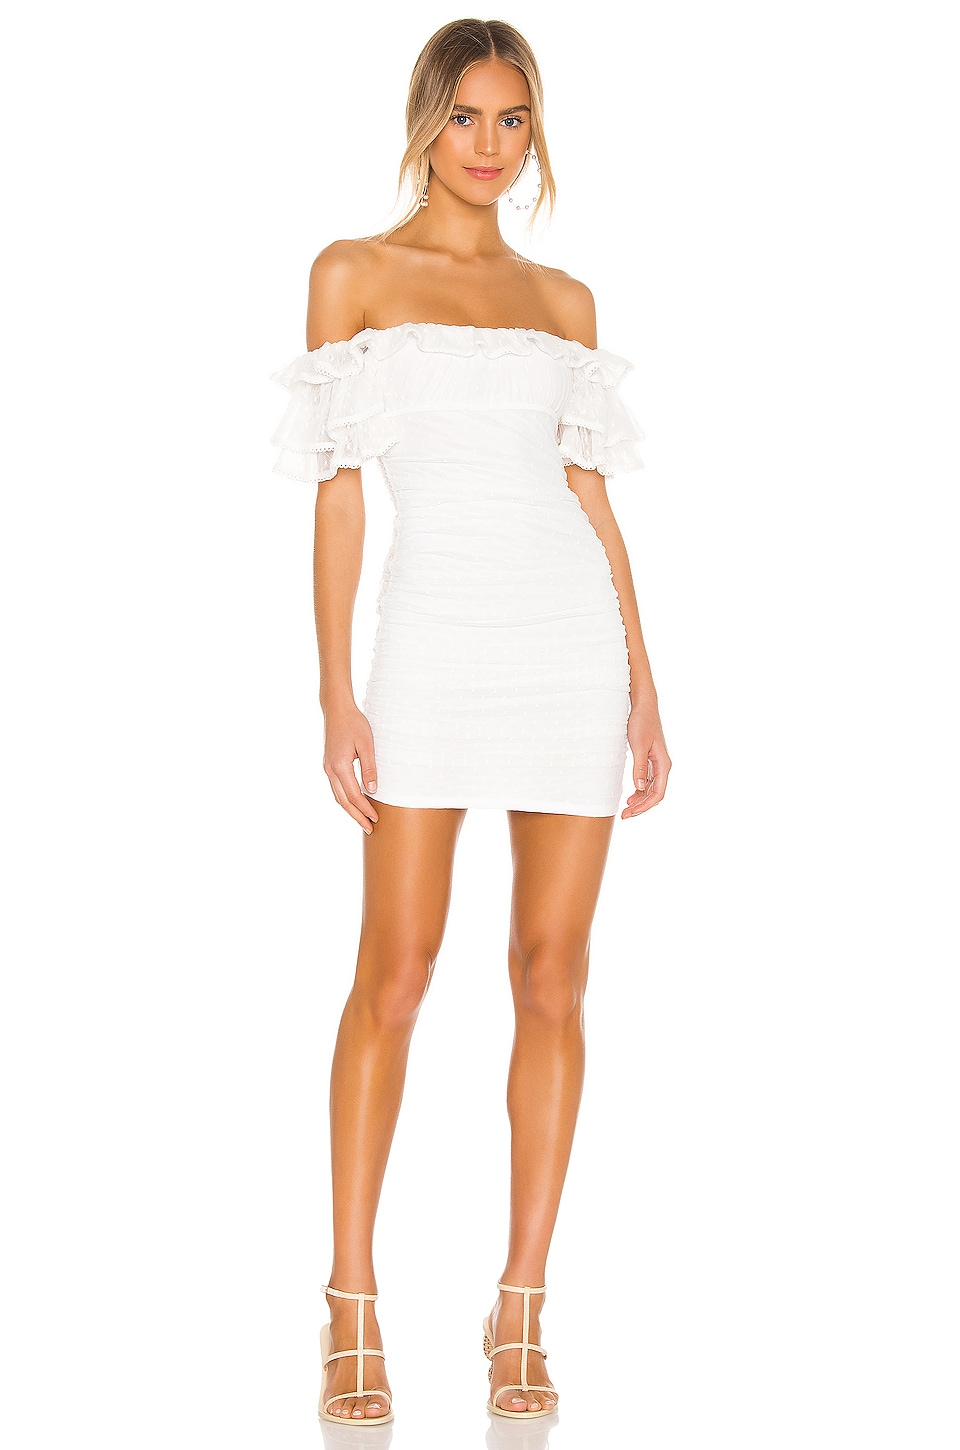 Eva Mini Dress             Camila Coelho                                                                                                       CA$ 300.48 15